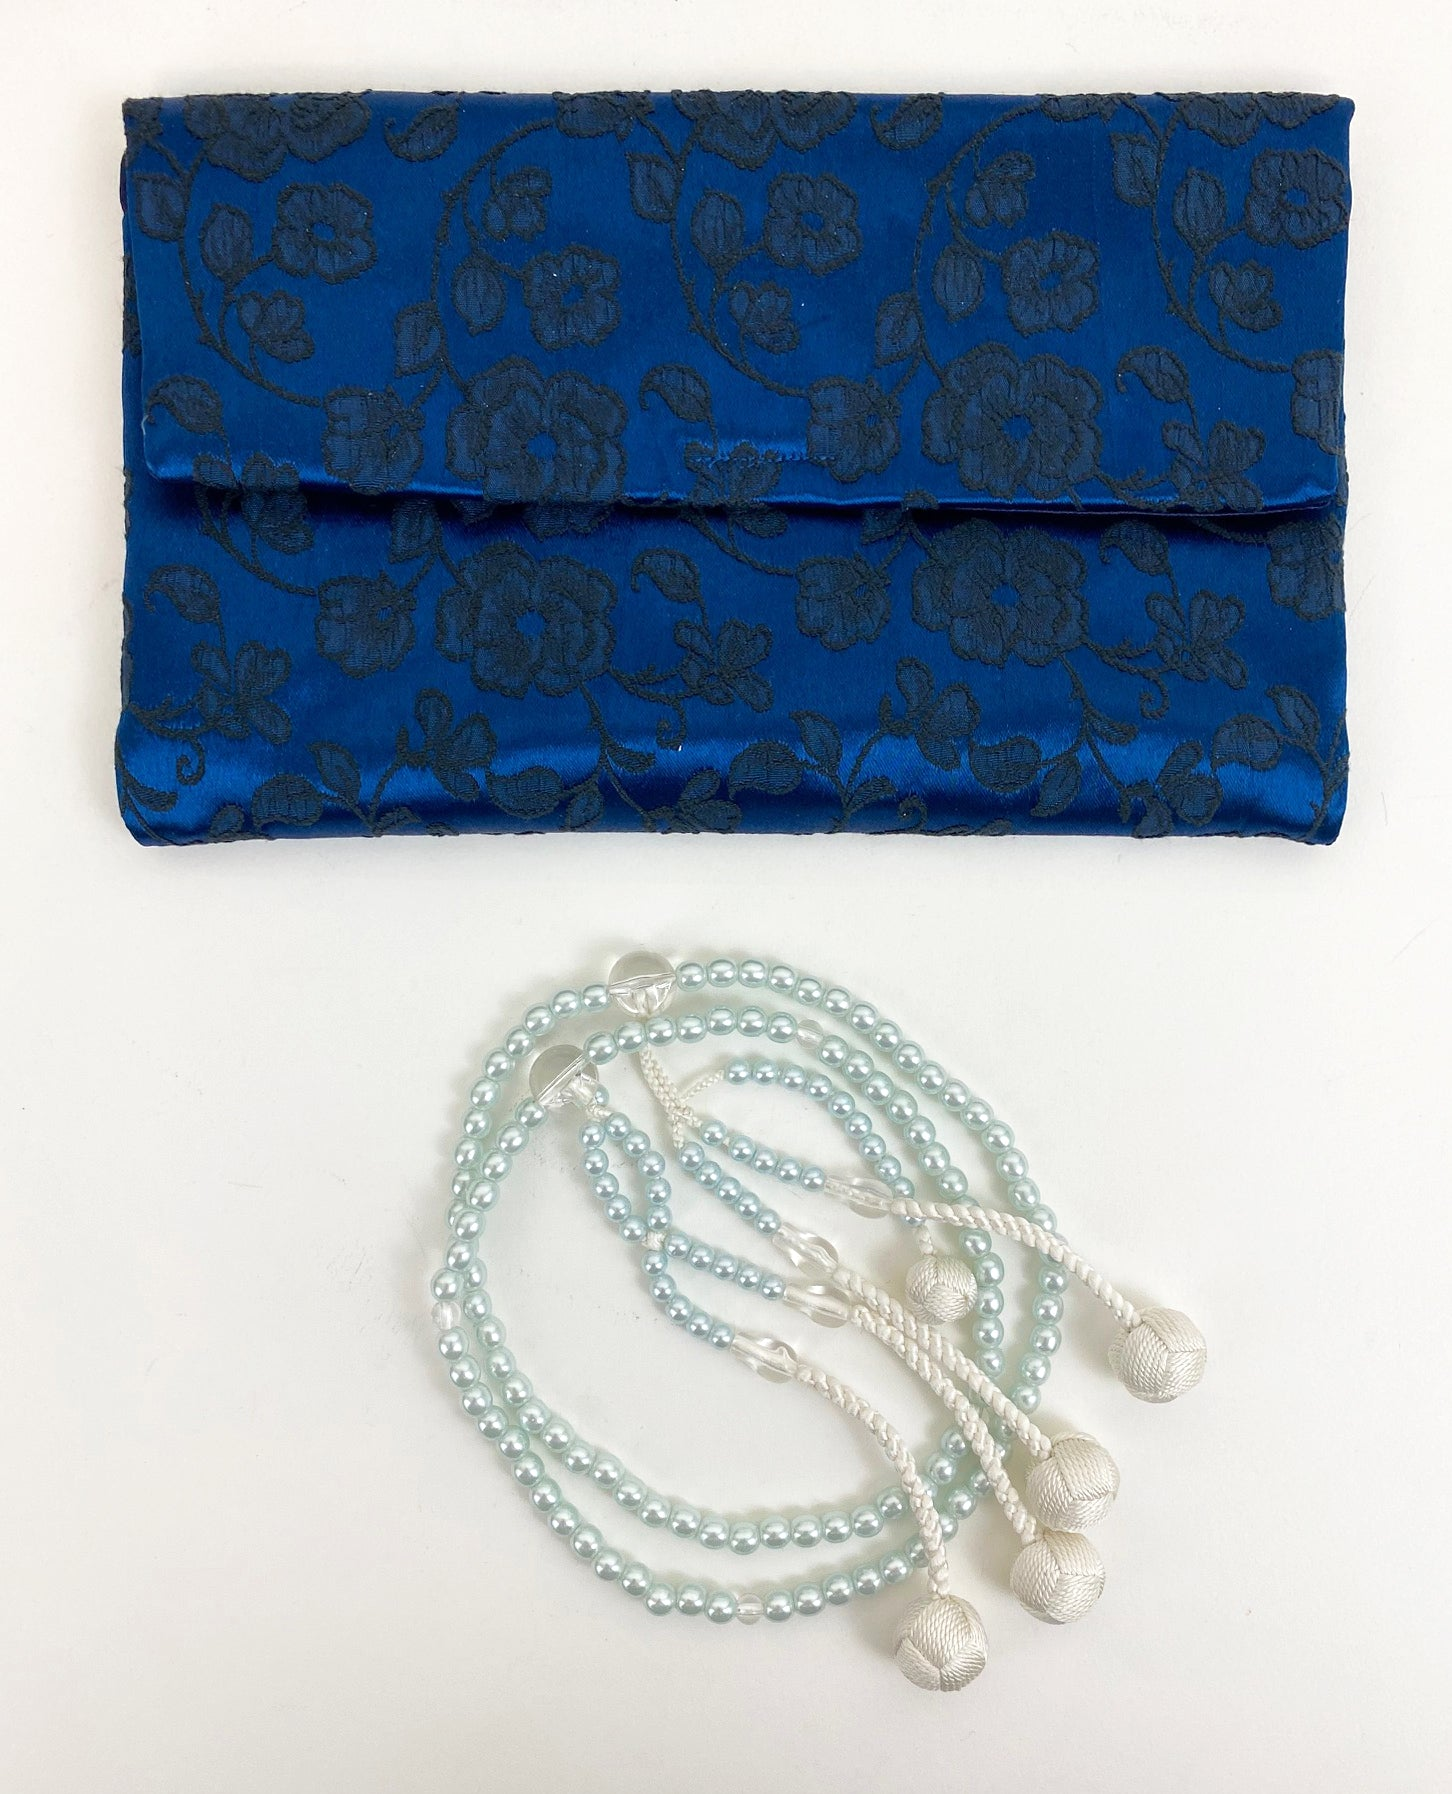 Pearl Blue Beads Set - Large Beads (Extra Large Beads Case)